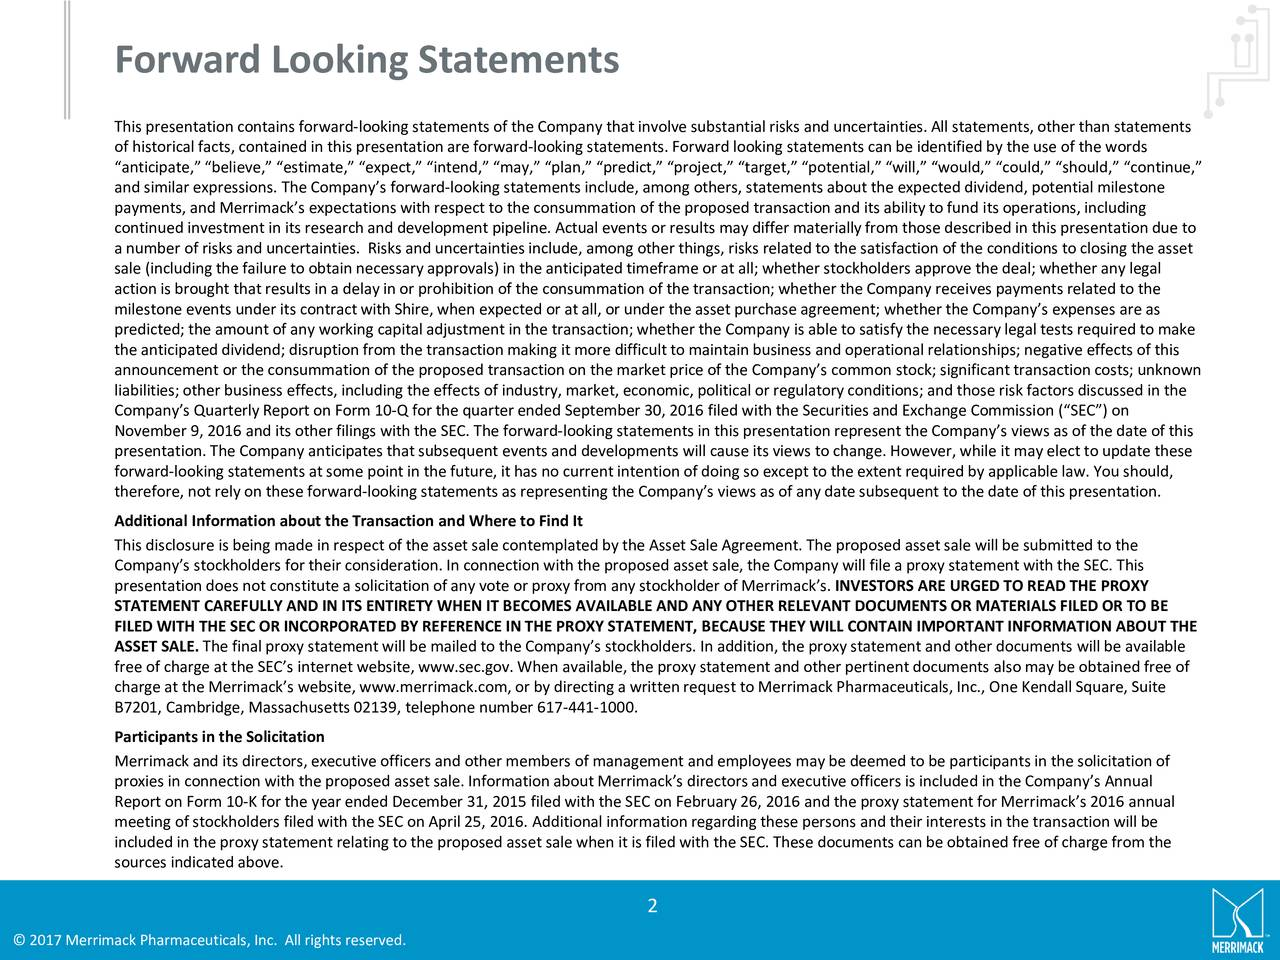 This presentation contains forward-looking statements of the Company that involve substantial risks and uncertainties. All statements, other than statements of historical facts, contained in this presentation are forward-looking statements. Forward looking statements can be identified by the use of the words anticipate, believe, estimate, expect, intend, may, plan, predict, project, target, potential, will, would, could, should, continue, and similar expressions. The Companys forward-looking statements include, among others, statements about the expected dividend, potential milestone payments, and Merrimacks expectations with respect to the consummation of the proposed transaction and its ability to fund its operations, including continued investment in its research and development pipeline. Actual events or results may differ materially from those described in this presentation due to a number of risks and uncertainties. Risks and uncertainties include, among other things, risks related to the satisfactionof the conditions to closing the asset sale (including the failure to obtain necessary approvals) in the anticipated timeframe or at all; whether stockholders approve the deal; whether any legal action is brought that results in a delay in or prohibition of the consummation of the transaction; whether the Company receives payments related to the milestone events under its contract with Shire, when expected or at all, or under the asset purchase agreement; whether the Companys expenses are as predicted; the amount of any working capital adjustment in the transaction; whether the Company is able to satisfy the necessary legal tests required to make the anticipated dividend; disruption from the transaction making it more difficult to maintain business and operational relationships; negative effects of this announcement or the consummation of the proposed transaction on the market price of the Companys common stock; significant transaction costs; unknown liabilities; 